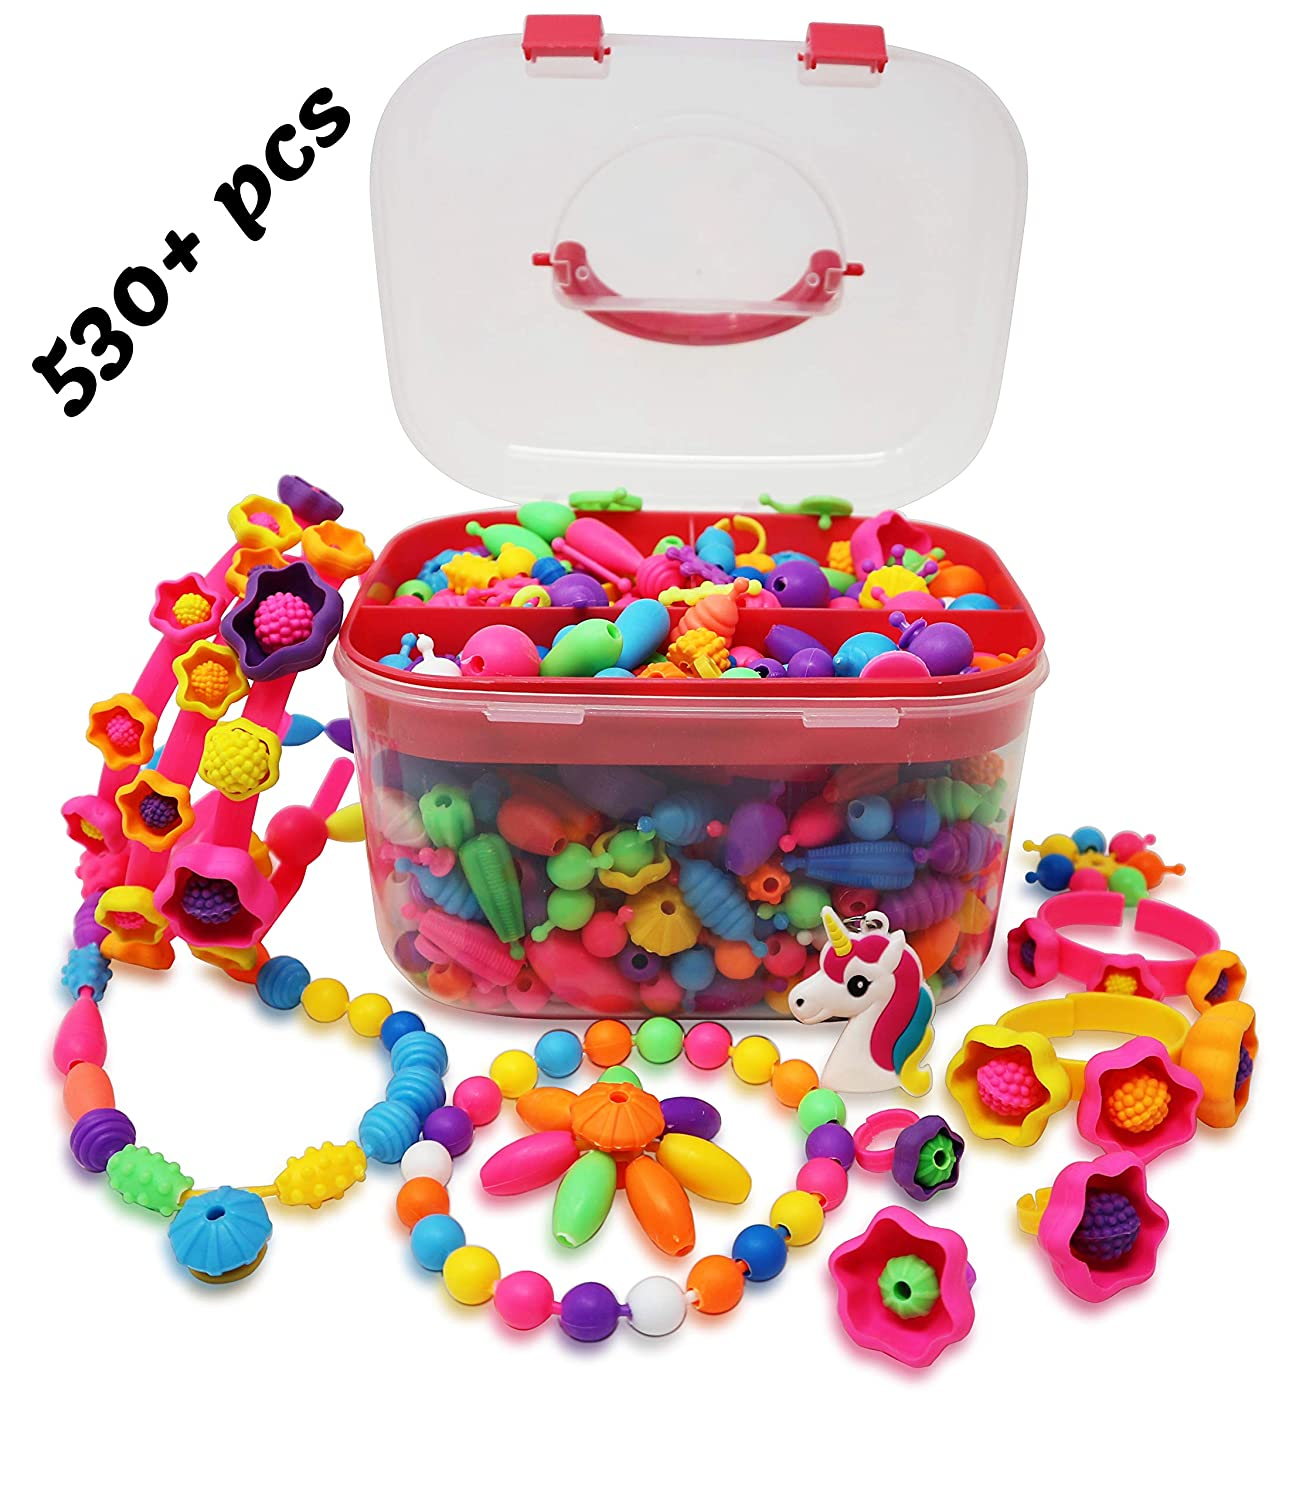 Pop Beads Art and Crafts Kids DIY Snap Together Jewelry Making Toy Kit Set Creative Bracelets Rings Necklace Headbands Birthday and Christmas Gift Age 4 5 6 7 and 8 Year Old Girls 530 pieces